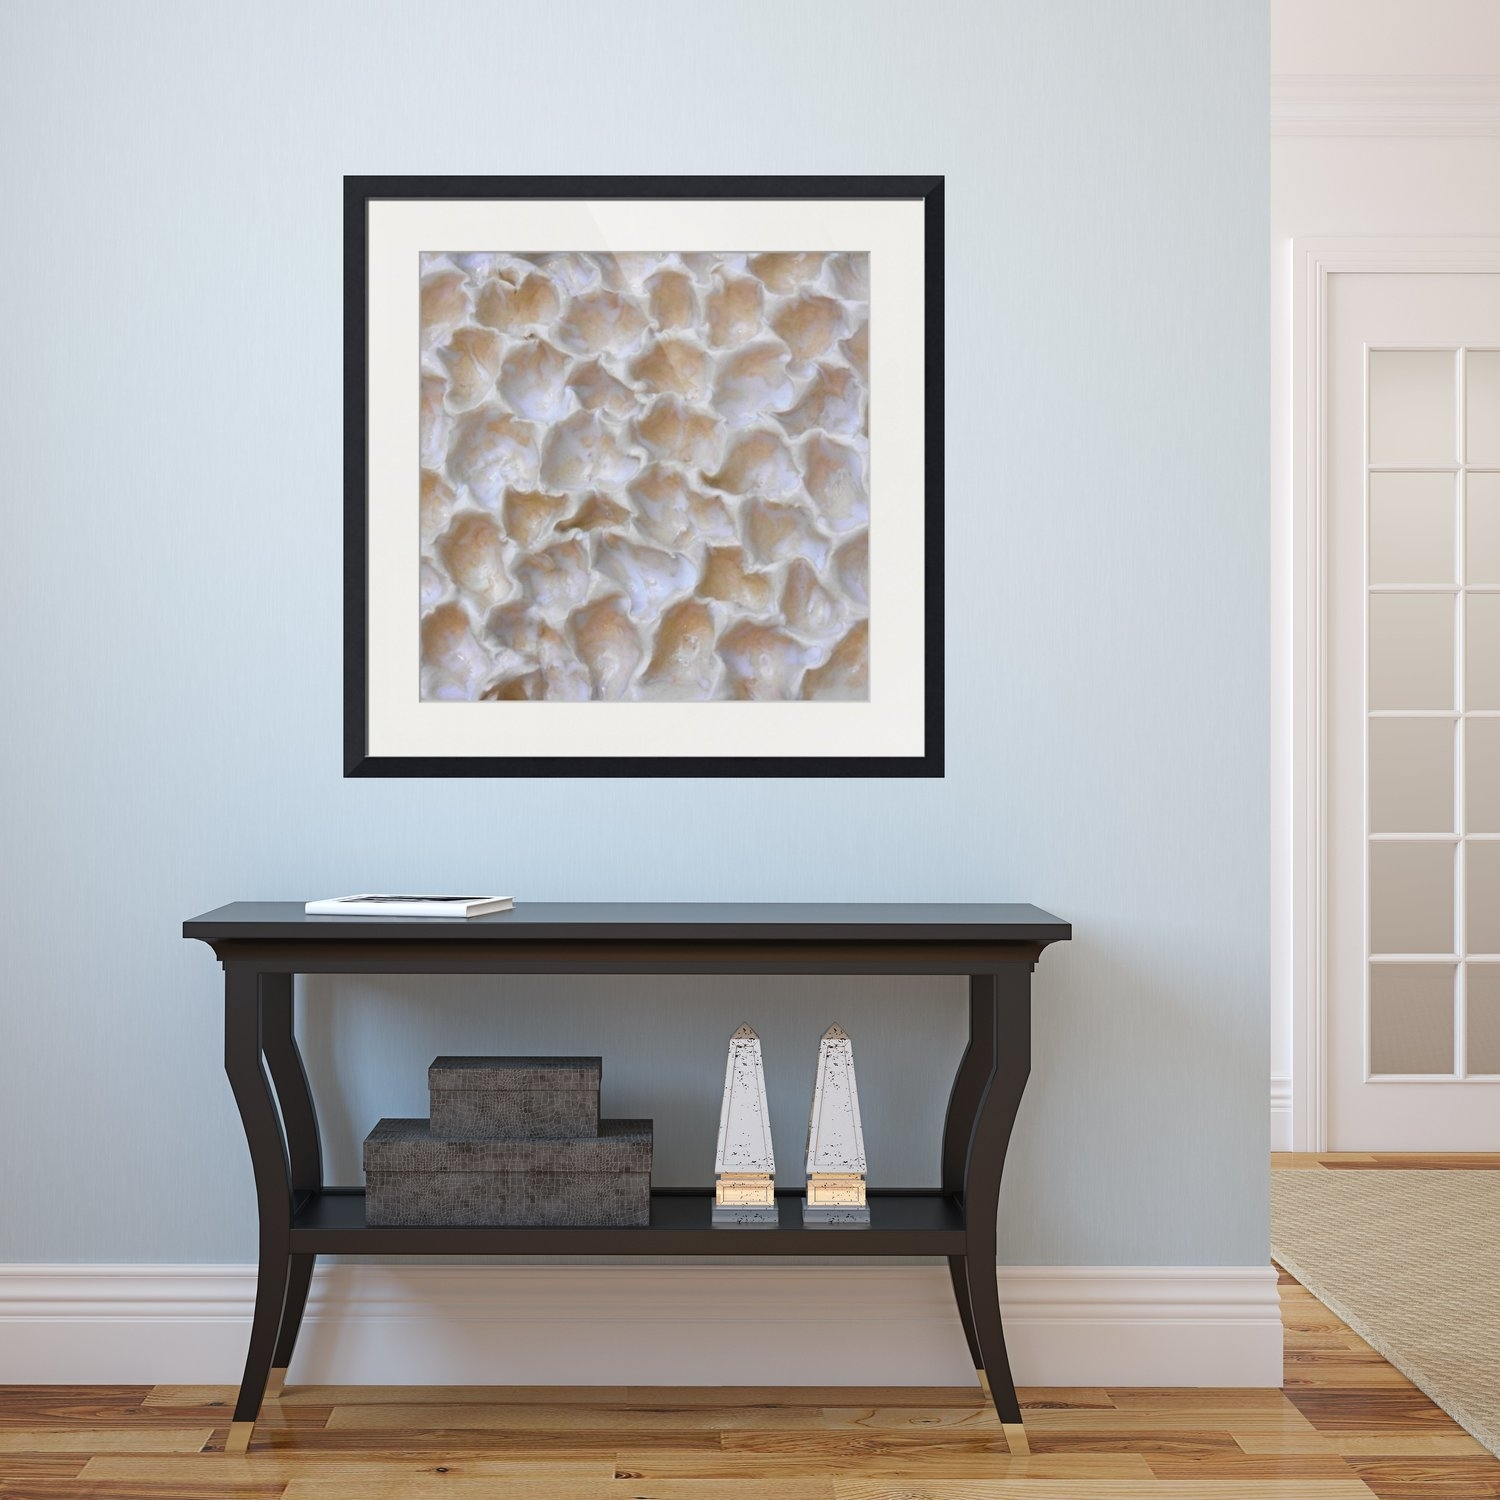 Abstract Framed Wall Art – Square #1 | Abstract Canvas, Modern Intended For 2017 Contemporary Framed Art Prints (View 1 of 15)